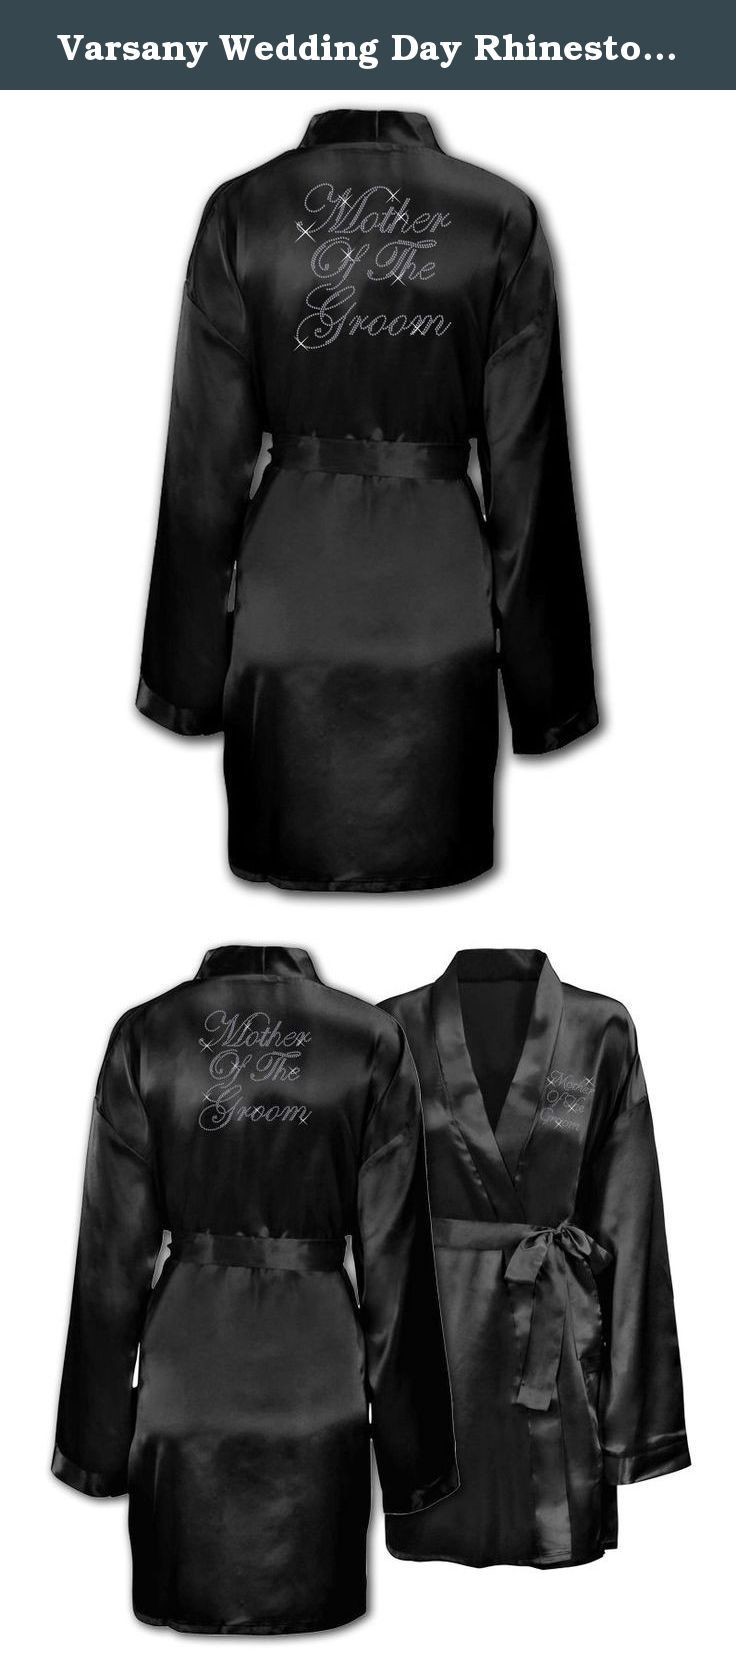 Varsany Wedding Day Rhinestone Satin Black Mother Of The Groom Personalised Honeymoon dressing gown robe. All bathrobes have been customized with our high quality machine cut rhinestones to ensure you sparkle amongst all your family and friends. Treat yourself to our super soft cotton bathrobes and make your bridal shower memberable.